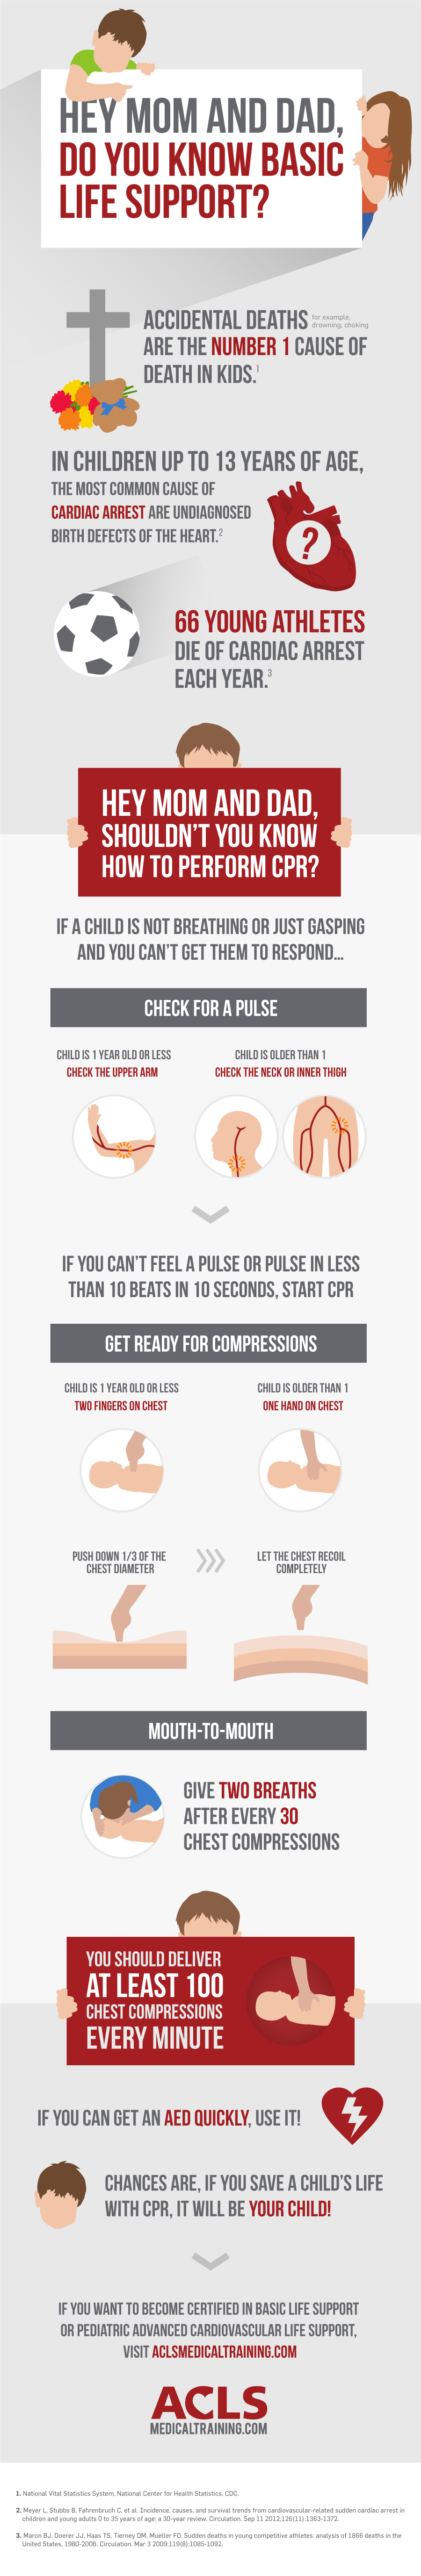 Parents - Do you know CPR?